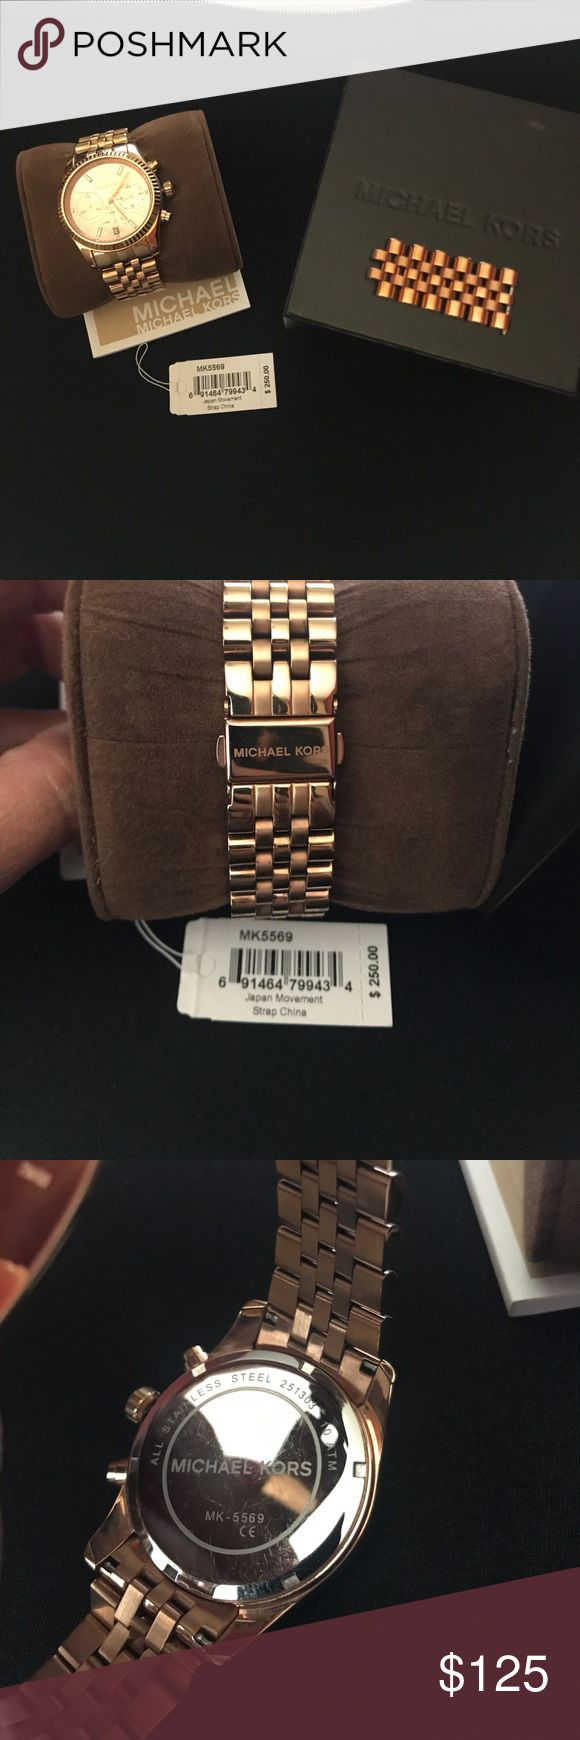 Michael Kors women's oversized watch Michael Kors Lexington women's watch in rose gold. Style #MK5569. Shows light scratches and comes with original links to size up of needed. Box and original tag is included also. Battery replaced recently. Excellent condition. MICHAEL Michael Kors Accessories Watches